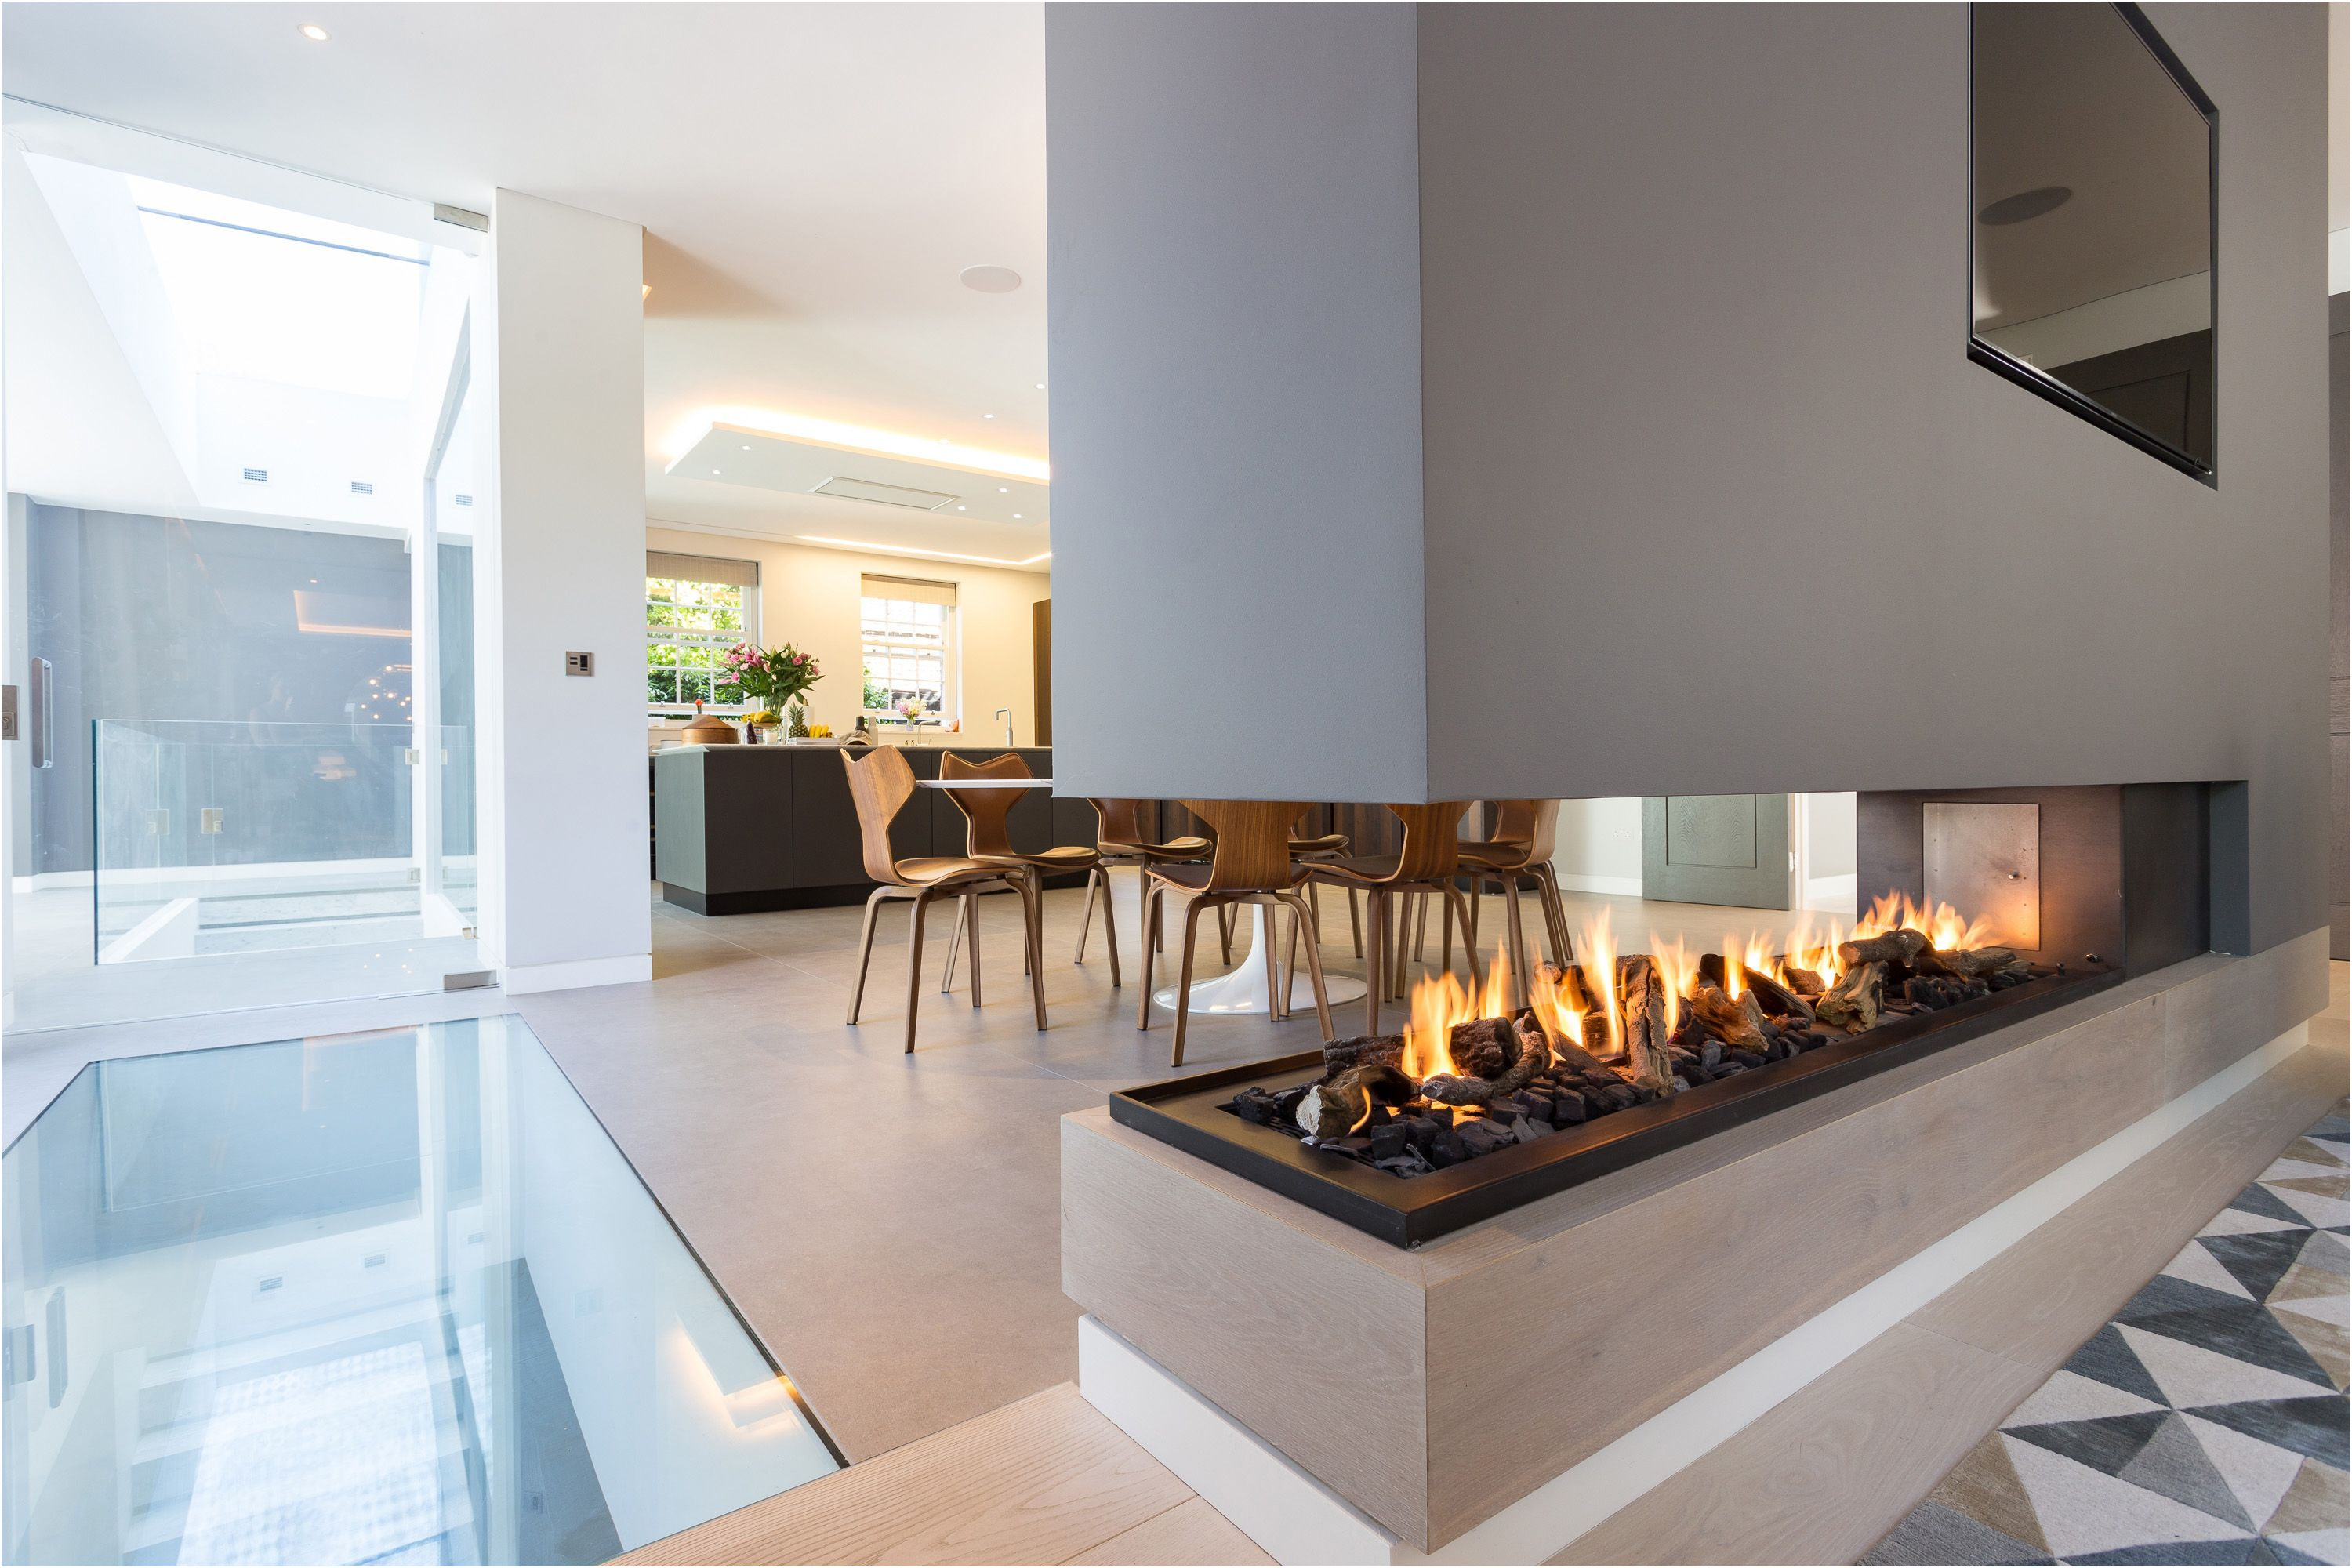 Gas Fireplace Ideas Best Of This Stunning Three Sided Gas Fireplace forms Part Of A Room